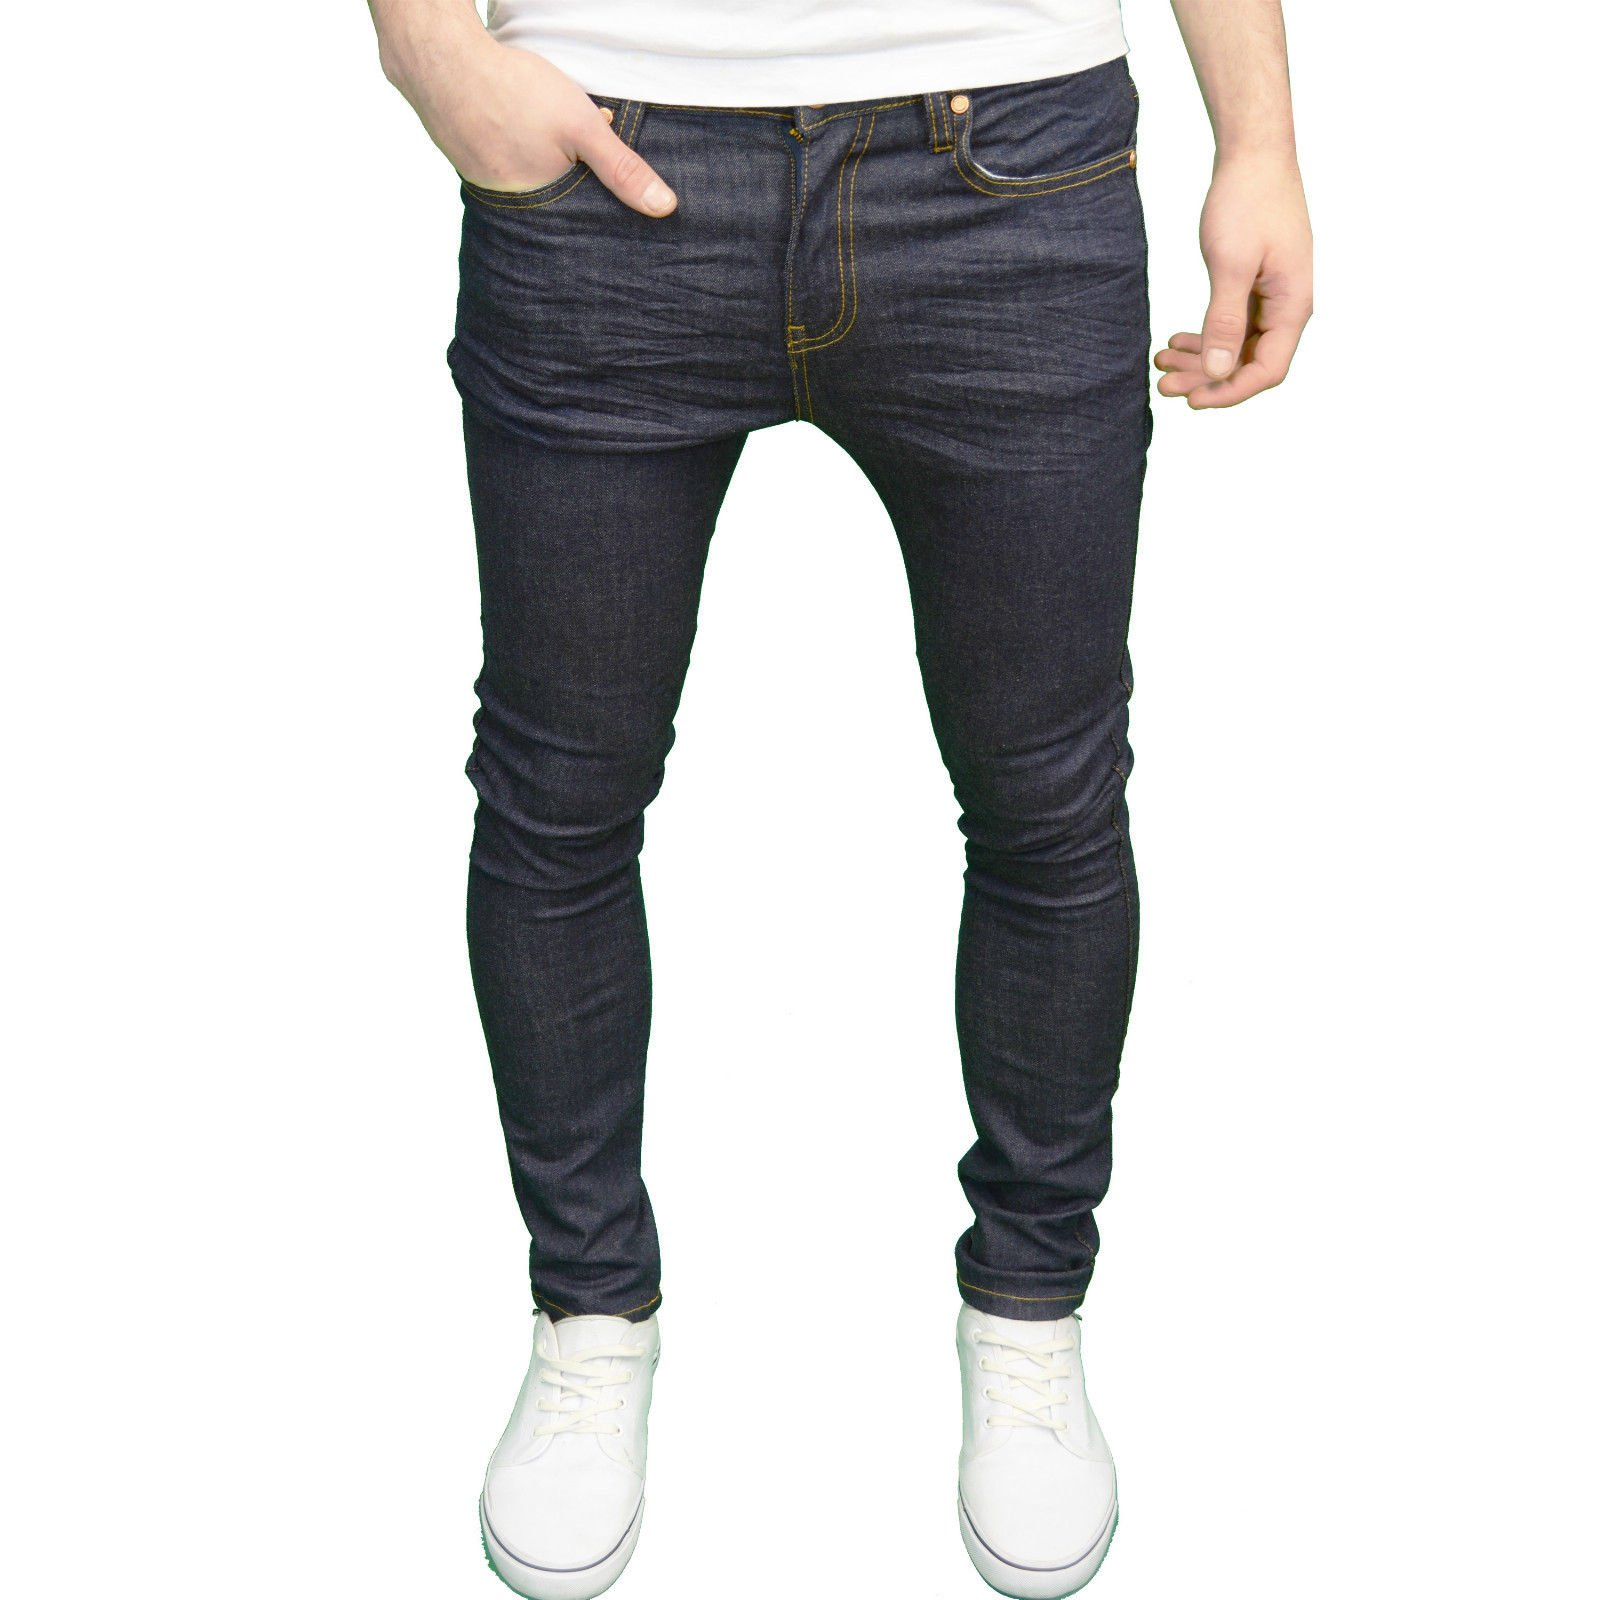 526Jeanswear Mens Designer Branded Skinny Fit Jeans  Available in 4 Colours Raw 30W   32L